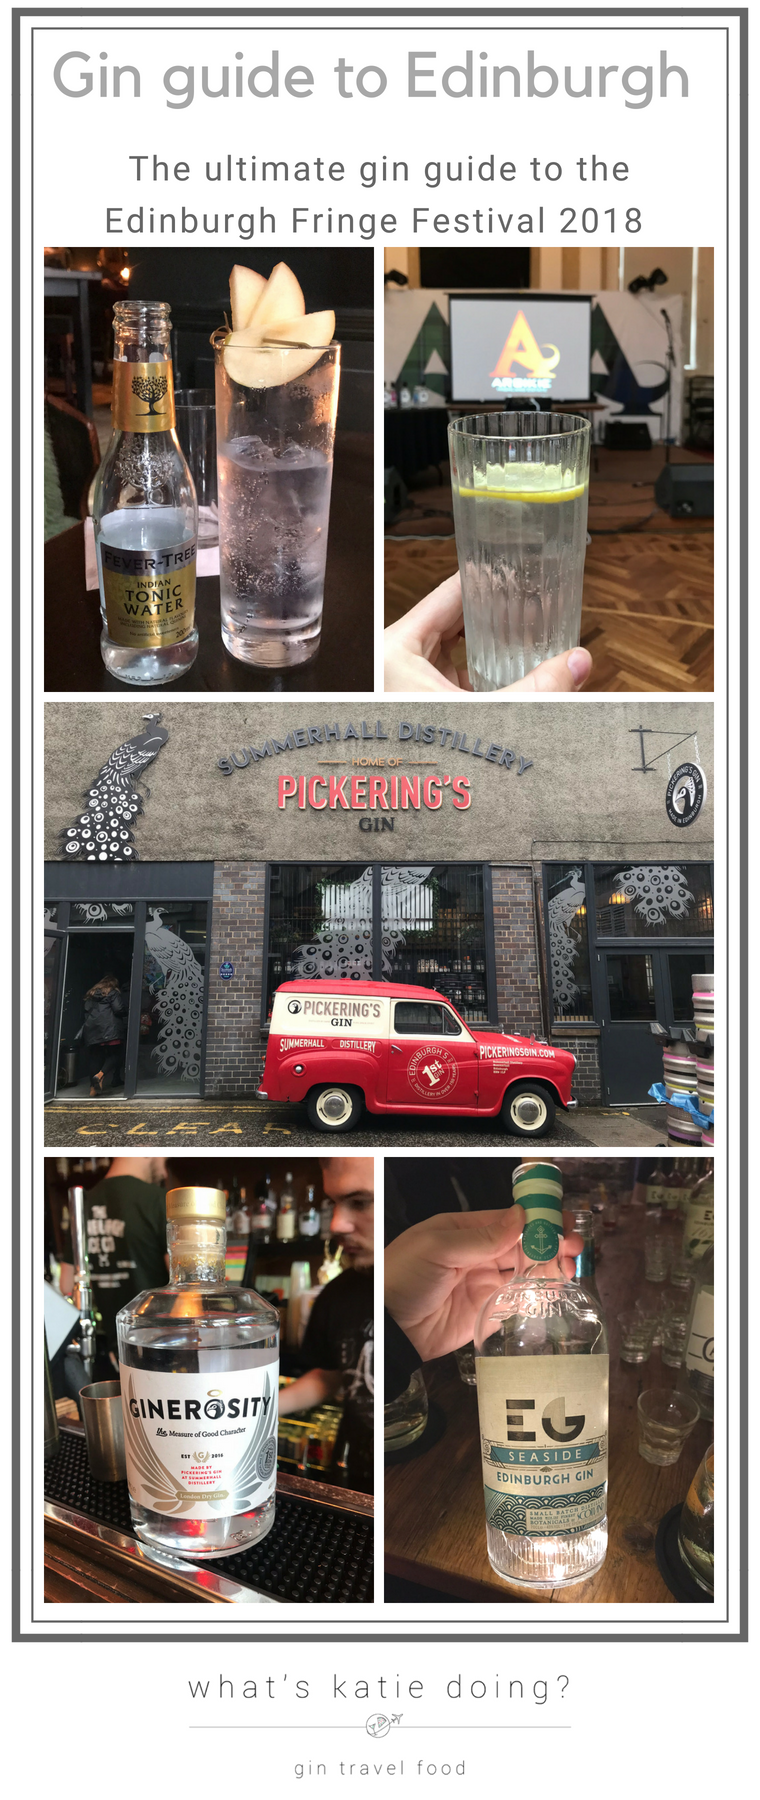 Gin guide to the Edinburgh Fringe Festival 2018